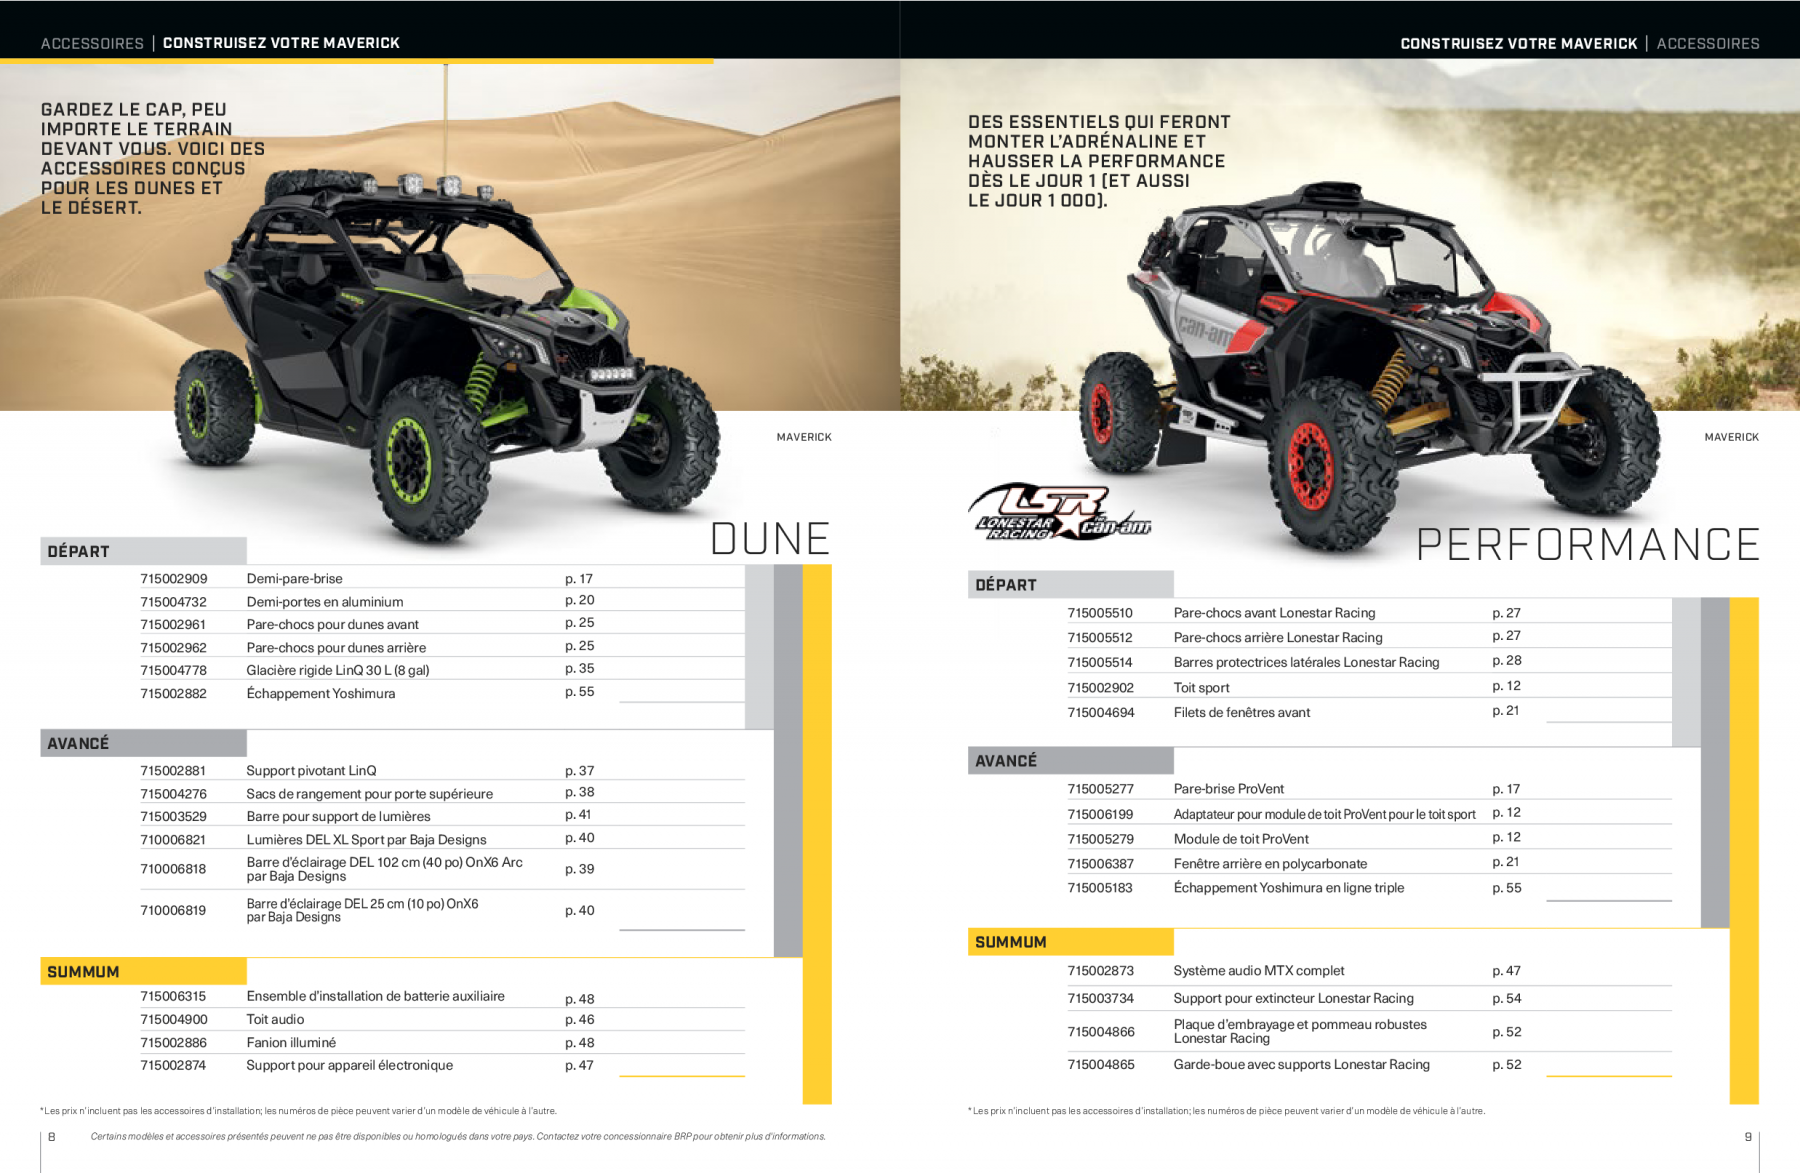 catalogue-accessoires-can-am-off-road-2021-maverick-X05